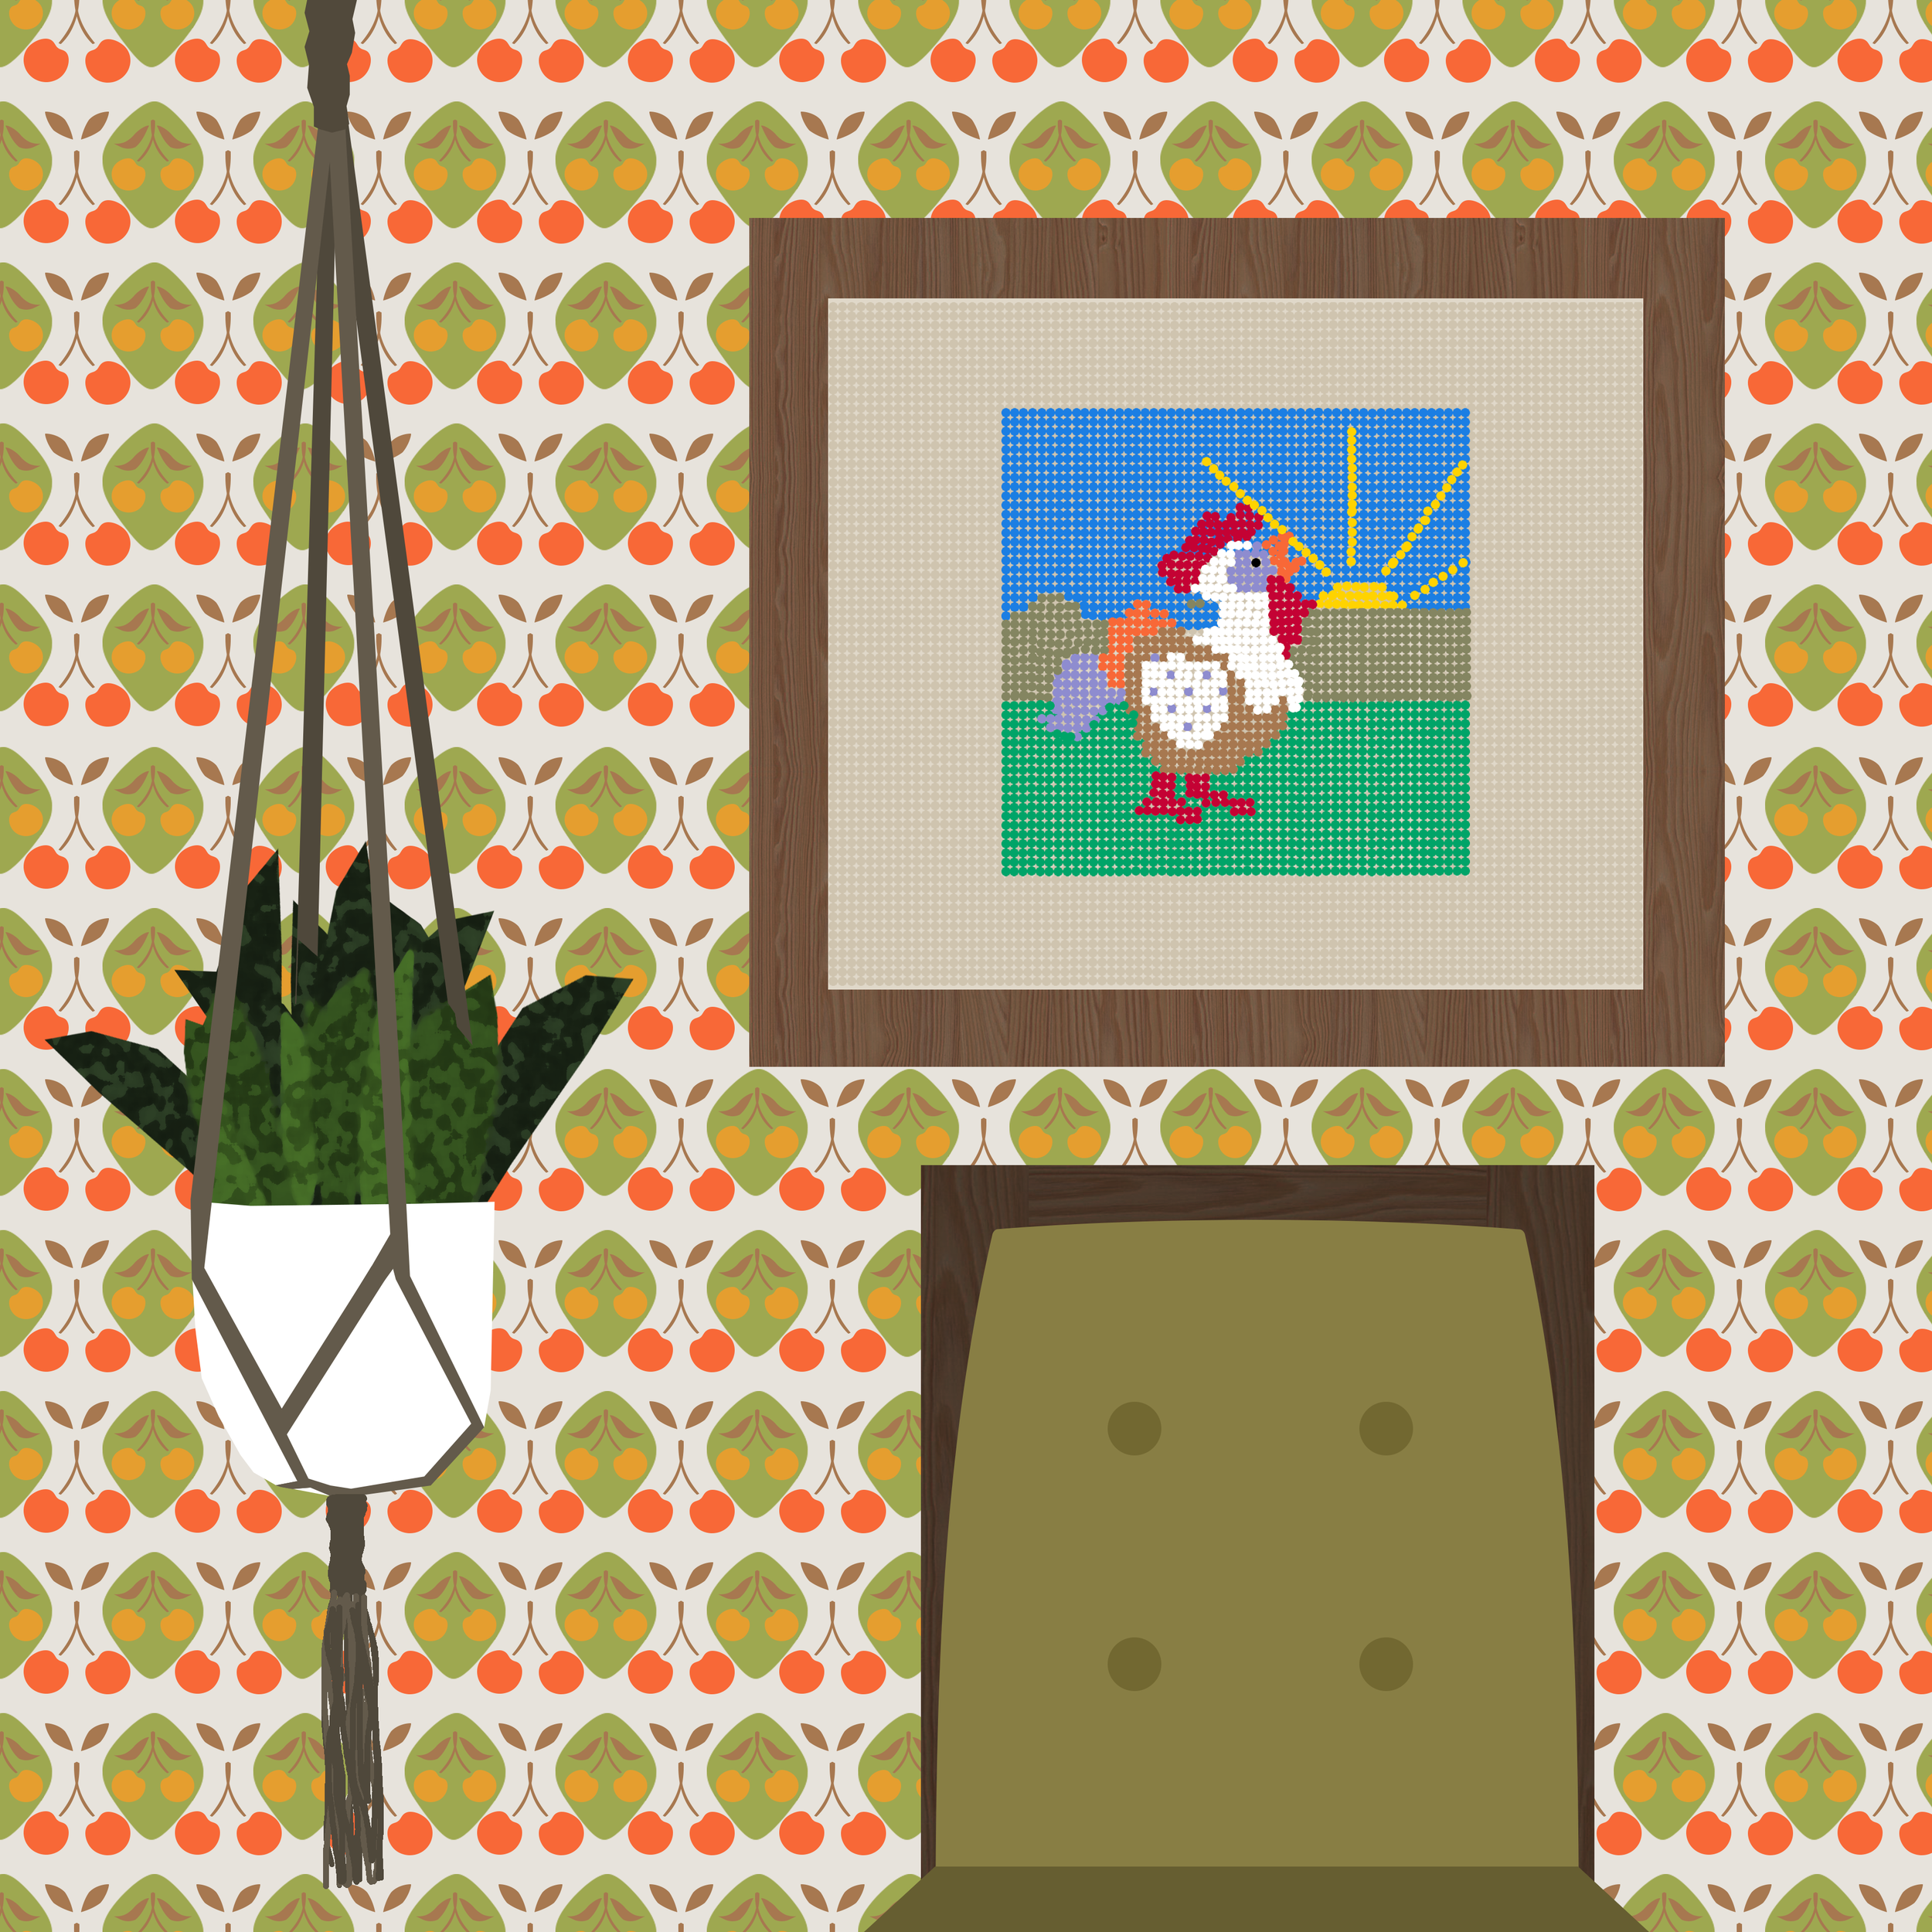 Cherry Wallpaper with Rooster Cross-stitch